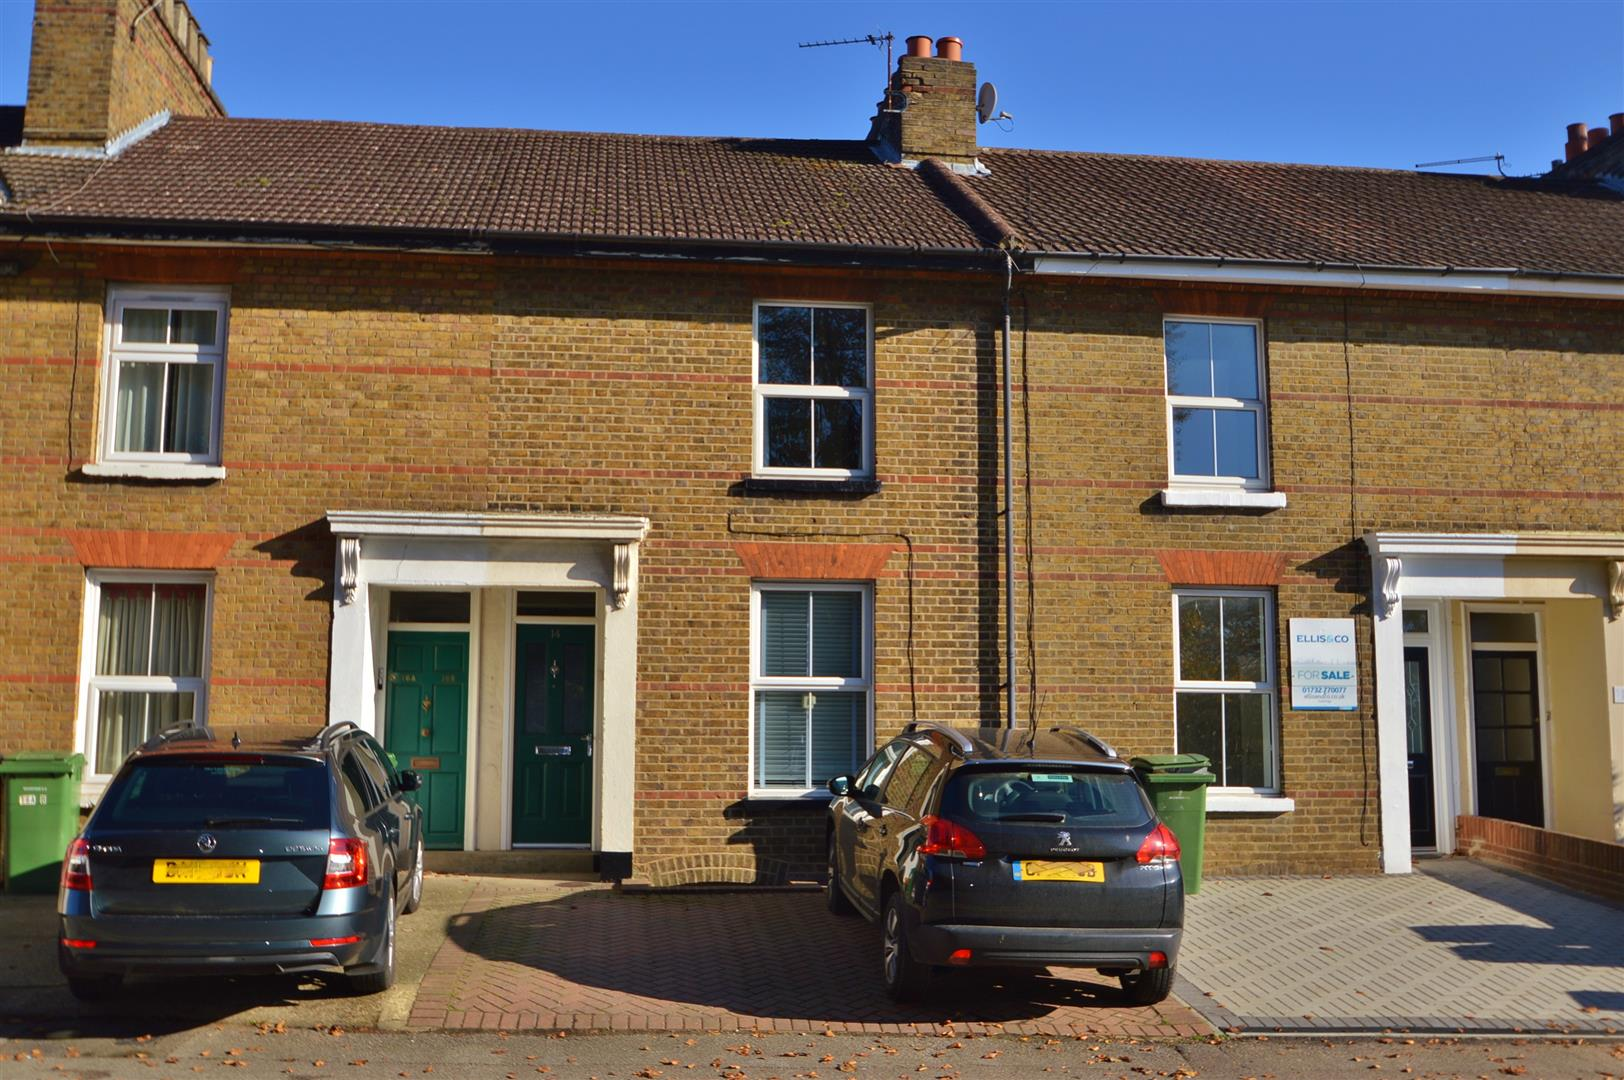 3 Bedrooms Terraced House for sale in Fisher Street, Maidstone